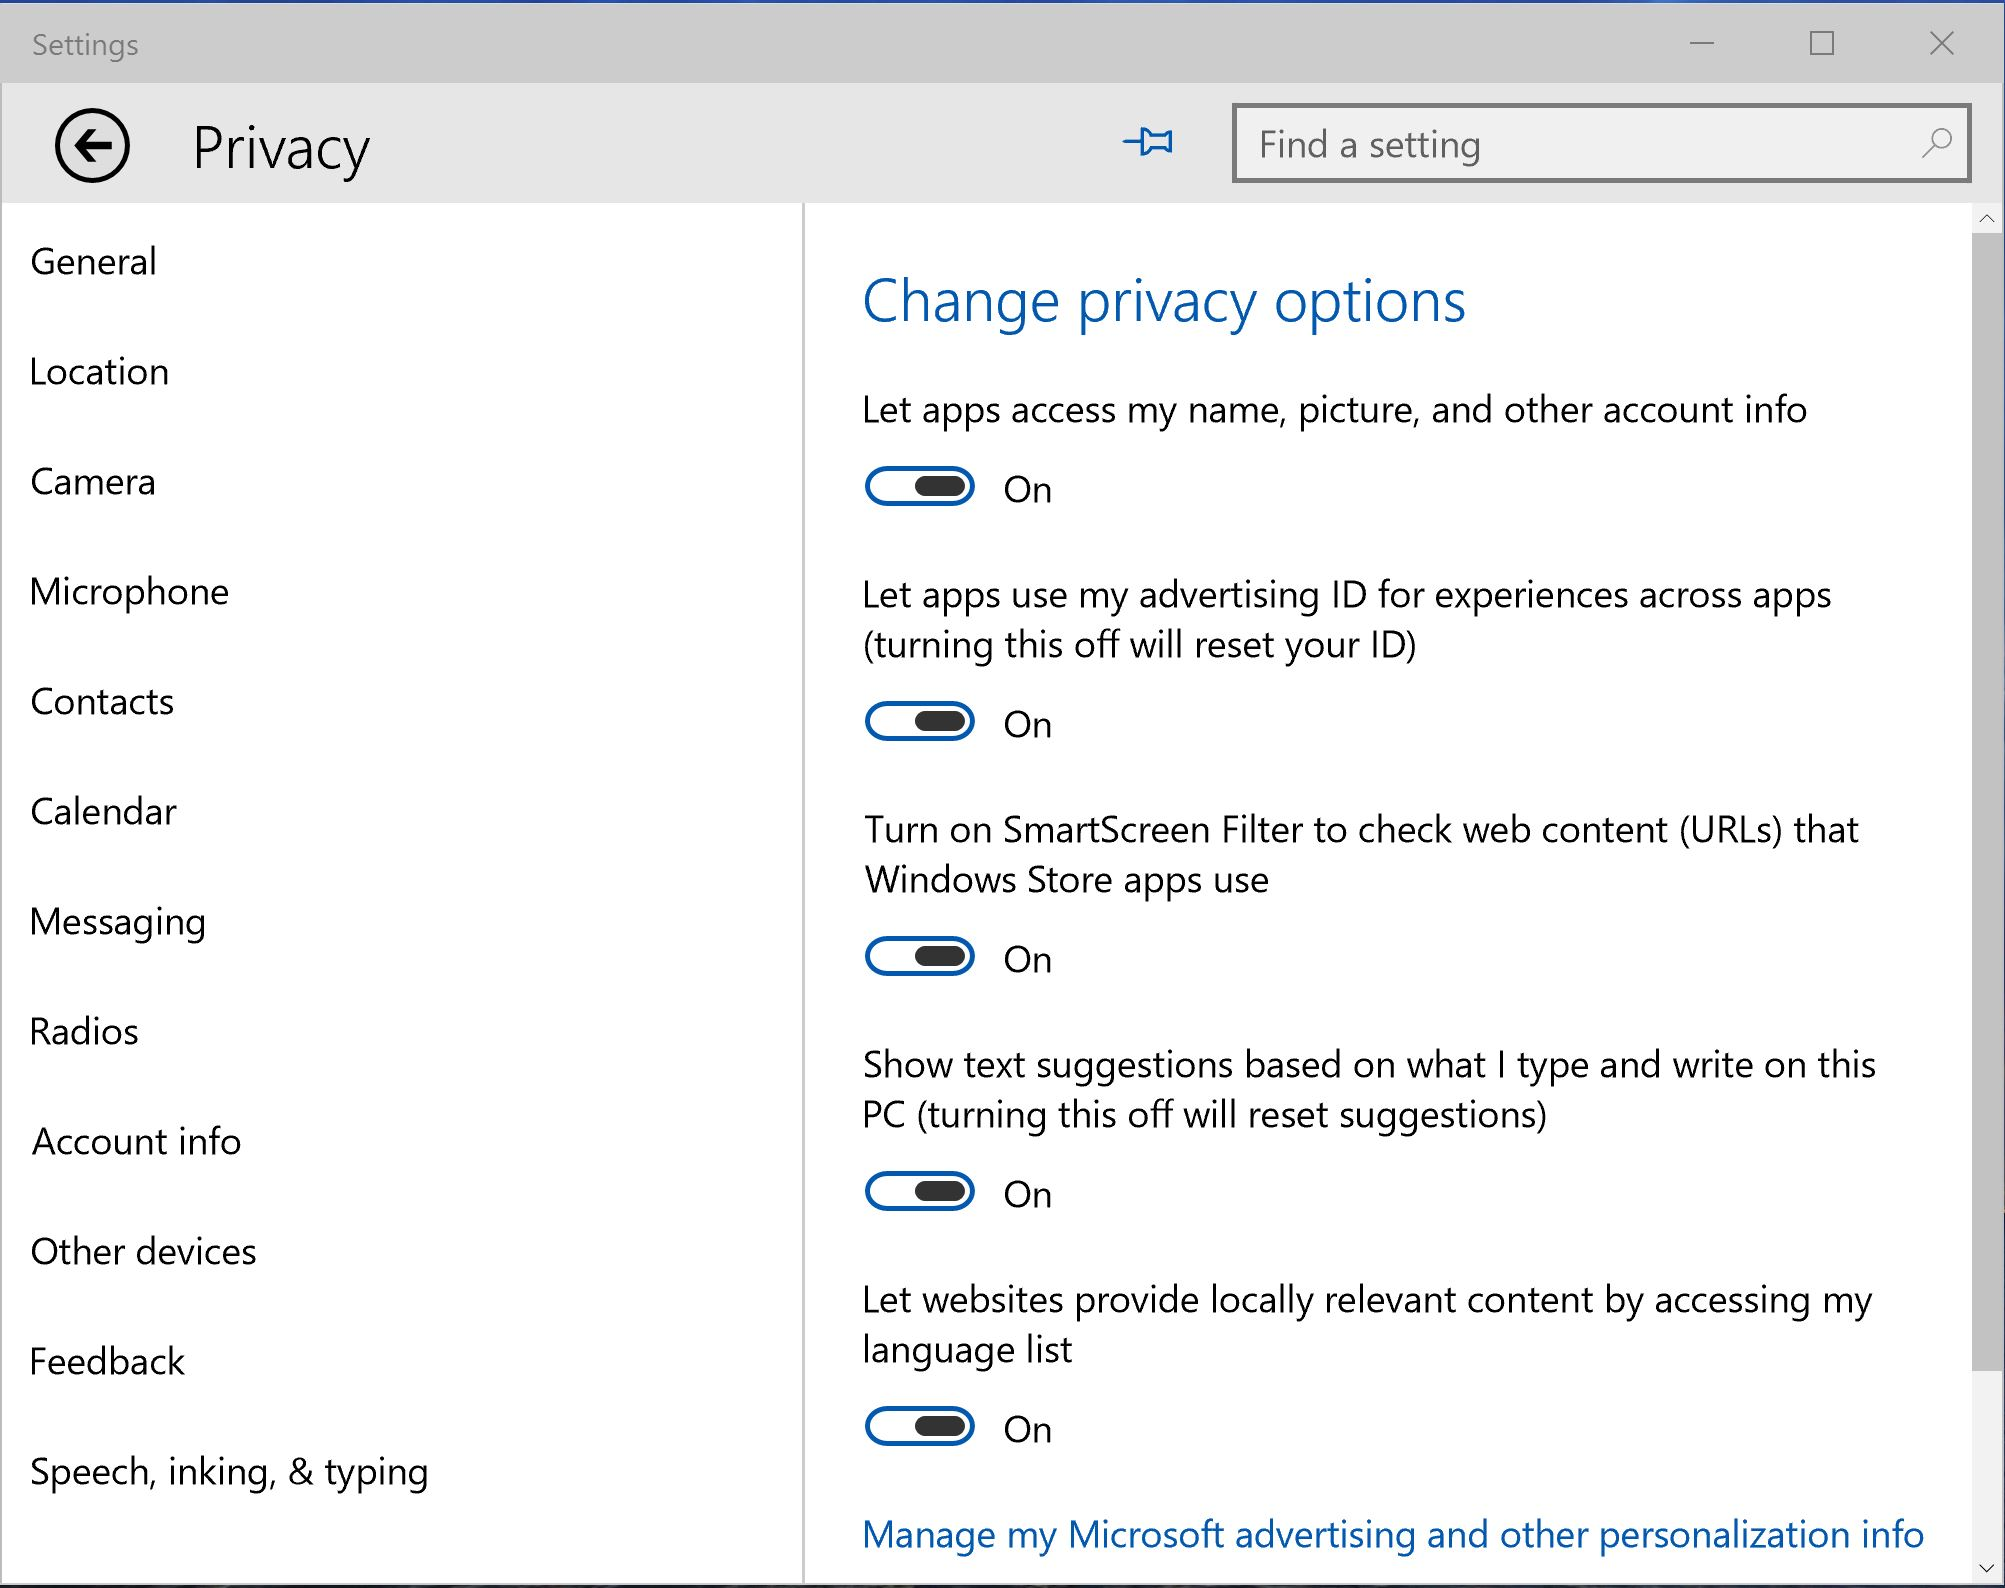 Recent Windows 10 Builds Includes New Privacy Settings - MSPoweruser